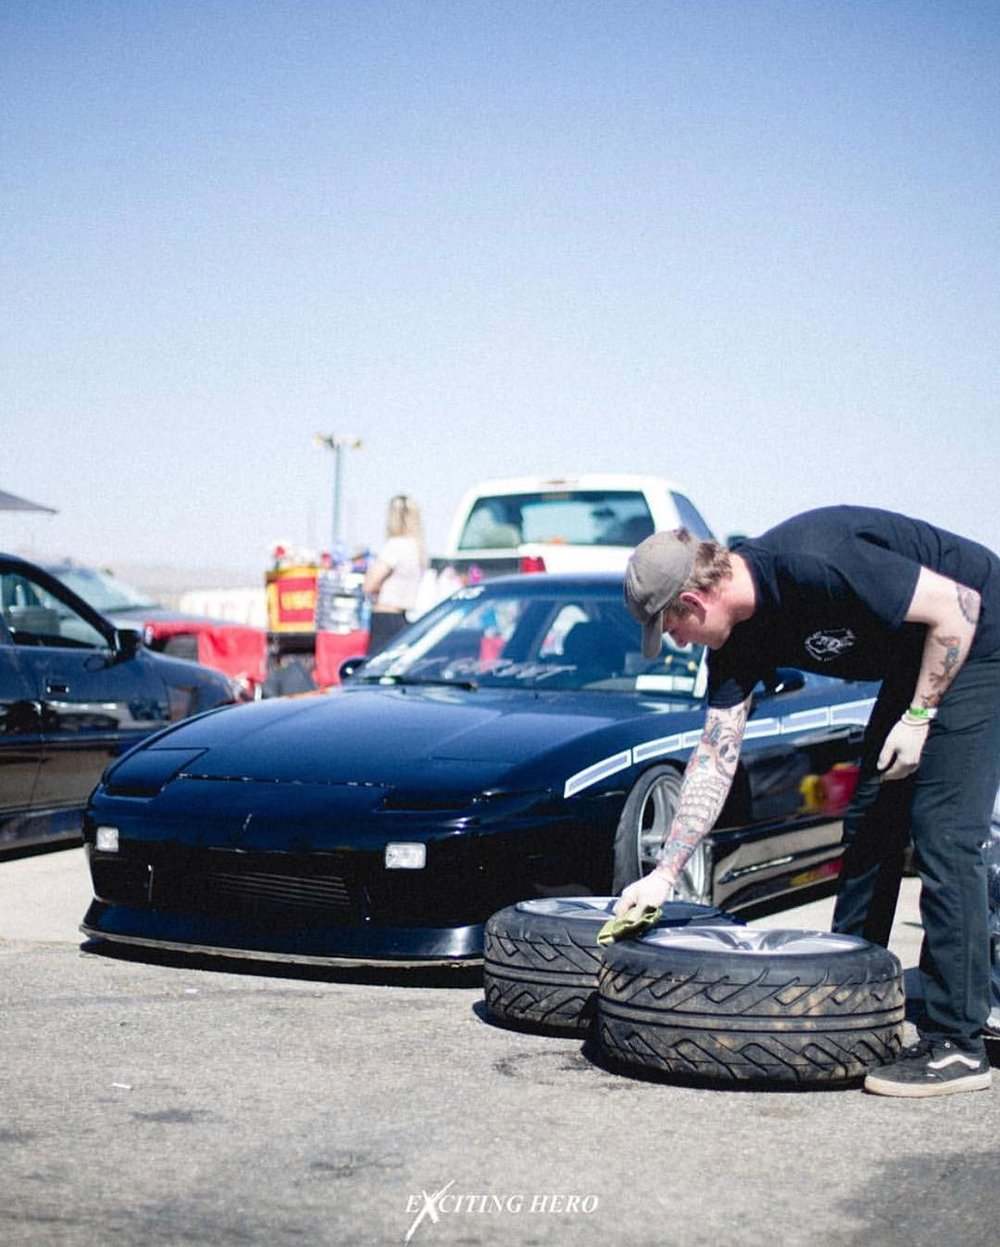 Machine Check(RPS13) - Engine: fully built s13 Sr20det , gen 2 gtx 2867r with a Silk Road Manifold with nismo injectorsDrivetrain: stock Sr trans and soild drive shaft, all stance suspension arms , and stance coilovers , soild subframe bushings , modified front knuckles and subframeAero: 30 mm origin rear overs vertex aero body kit , 180sx type x wingWheels: Avs model 5's 17x9 +22, 18x10 +19Interior: 2 bride zeta 2 seats, D max floor mats, full 6 point cage with full oem s13 aero